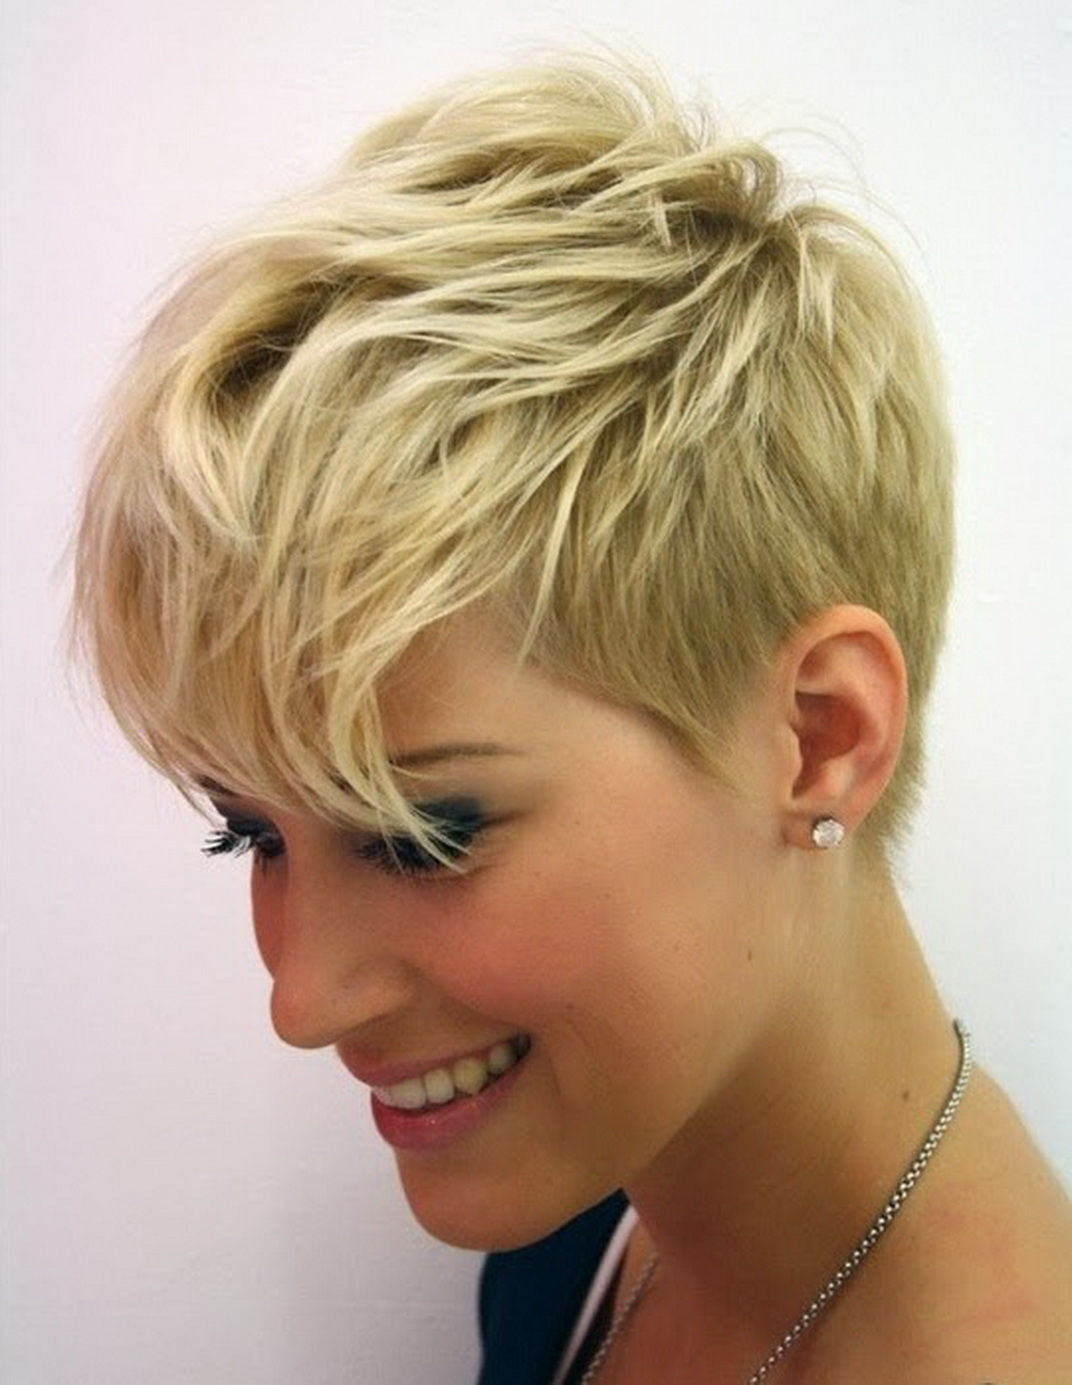 24 cool-looking short hairstyles for summer | styles weekly